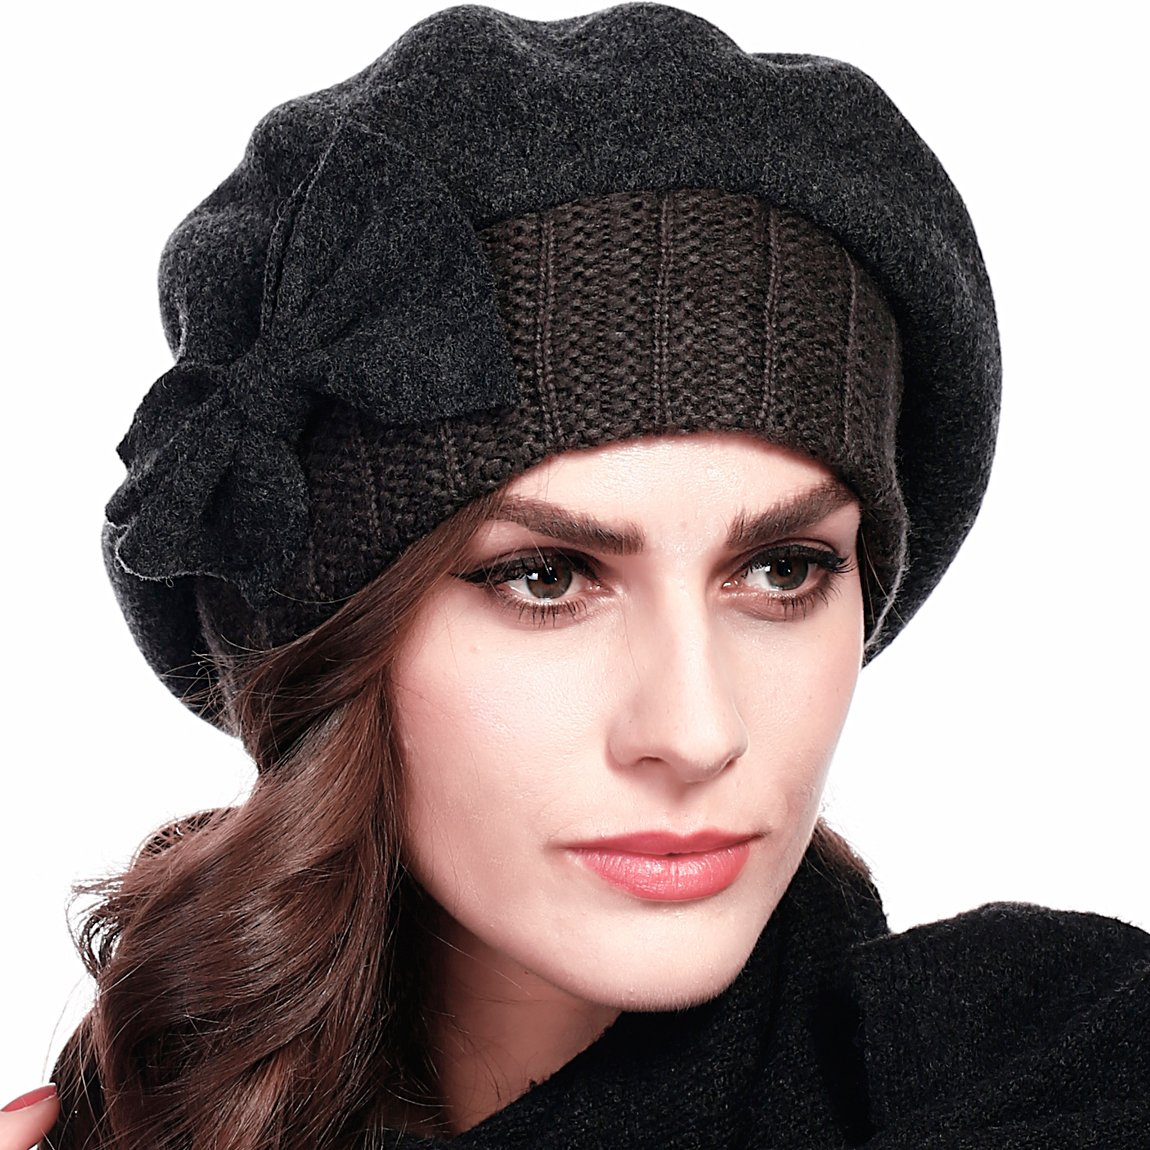 ed769e2c137 Z S Women Wool Beret Knit Cap With Bow (Black) at Amazon Women s Clothing  store